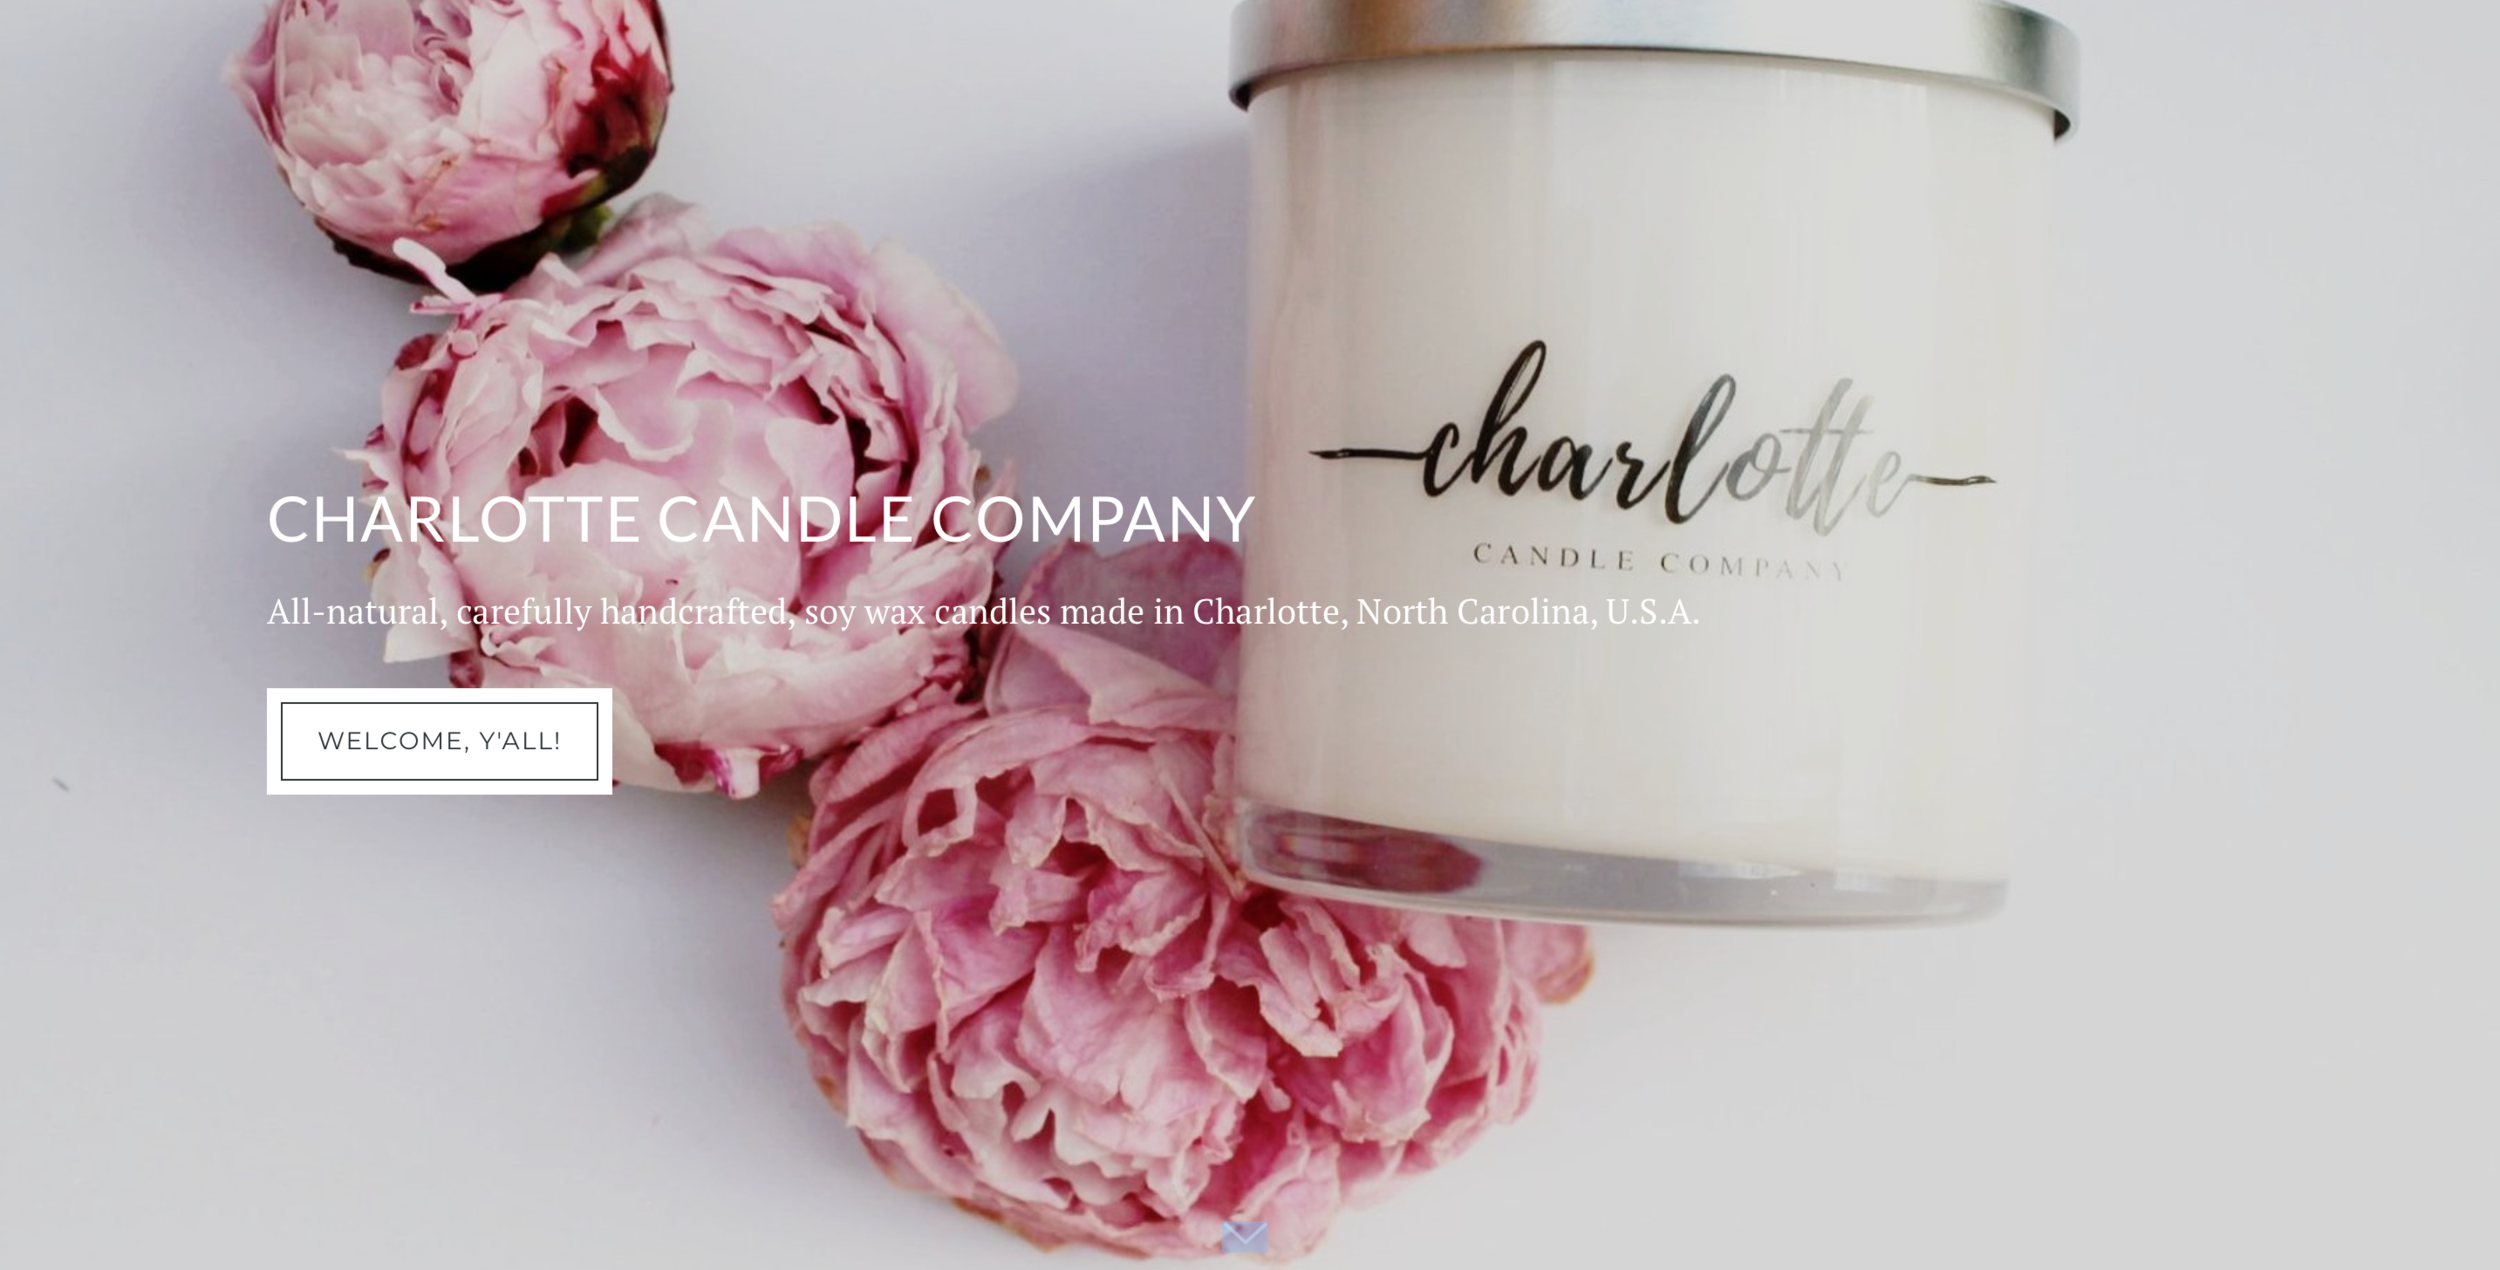 All-natural, carefully handcrafted, soy wax candles made in Charlotte, North Carolina, U.S.A.